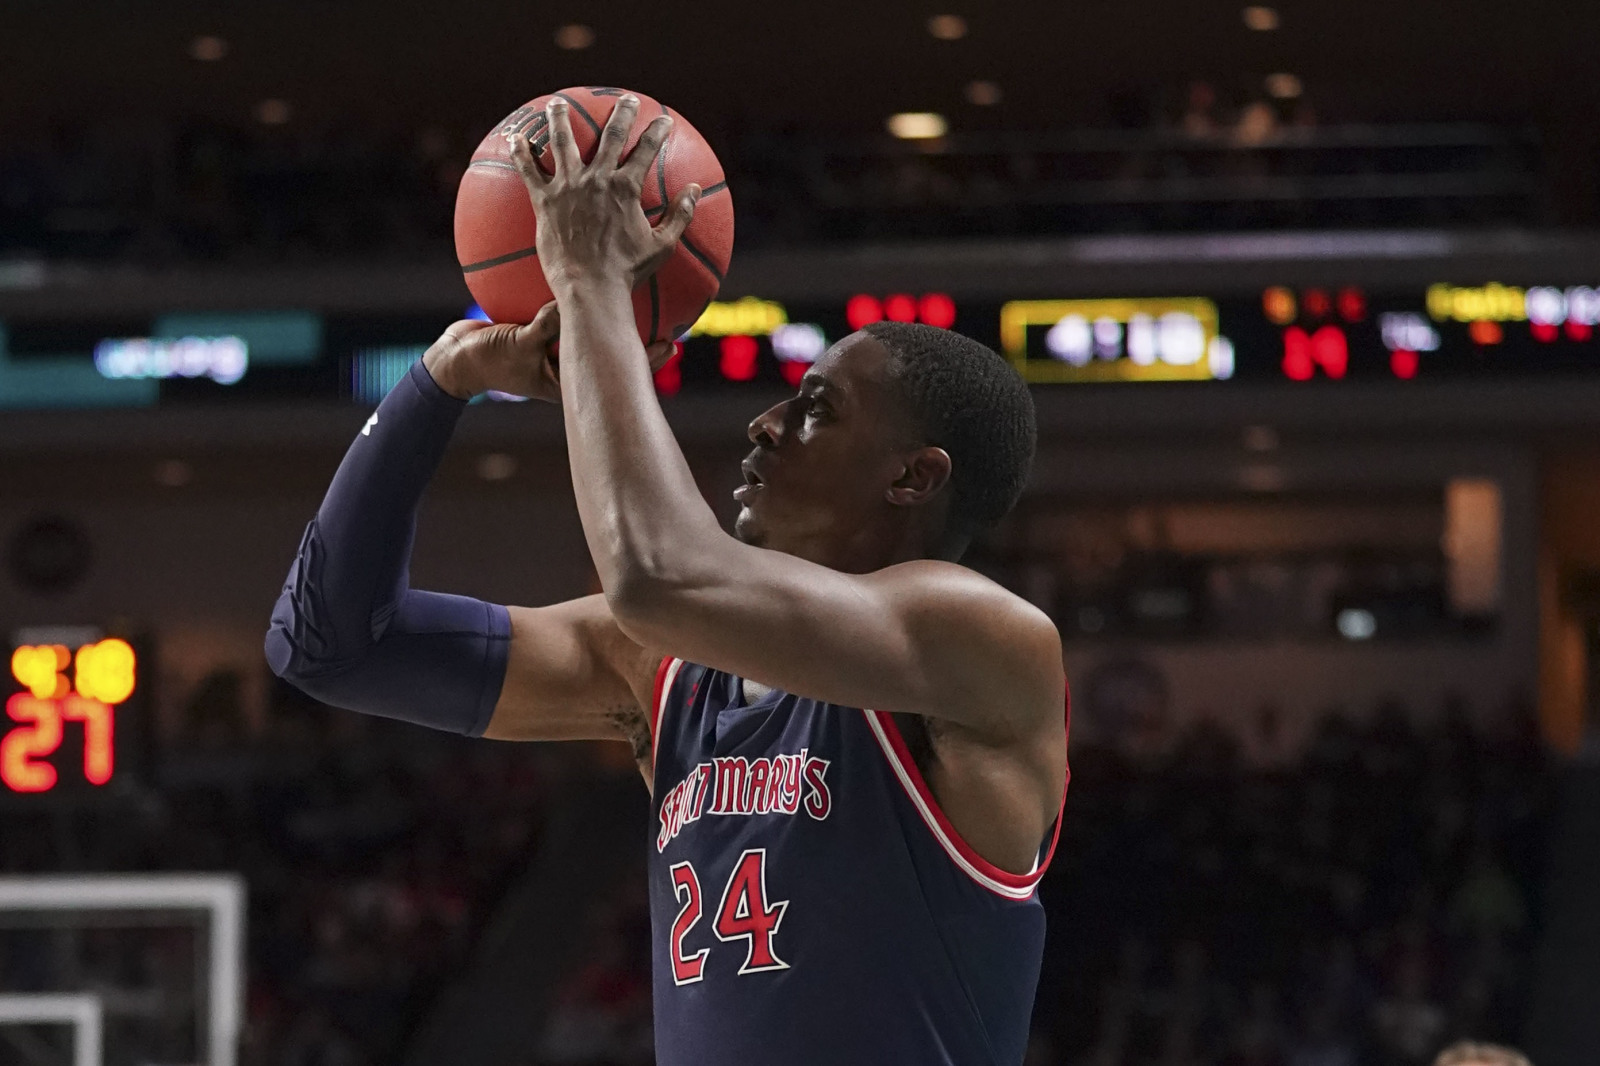 Saint Mary's Gaels forward Malik Fitts (24) shoots the basketball against the BYU Cougars